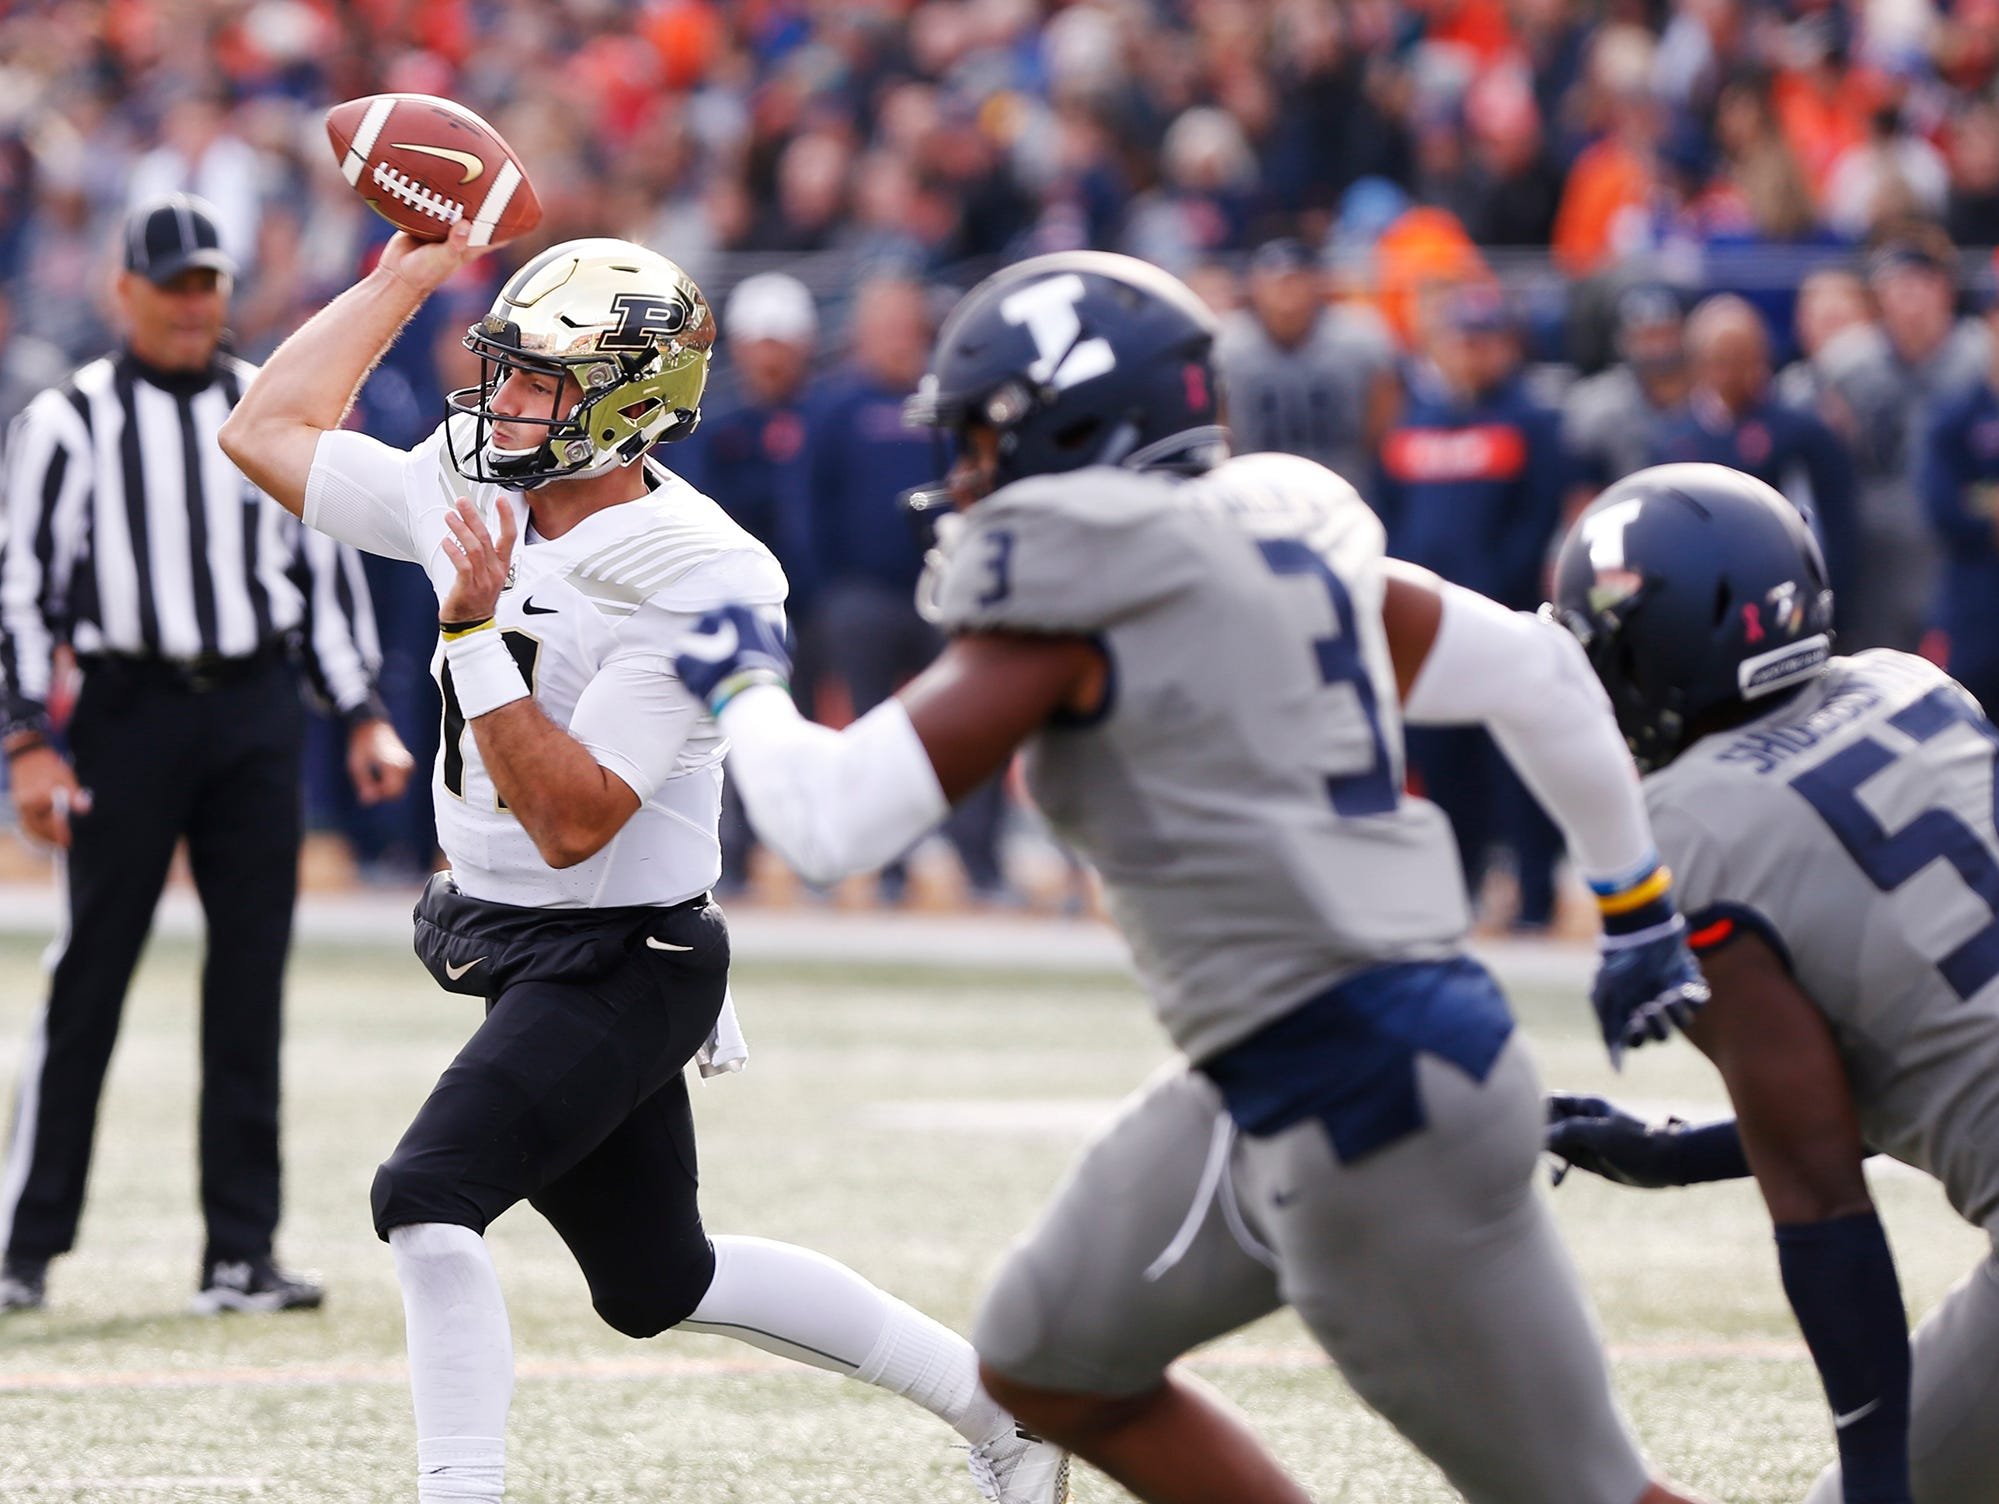 Purdue quarterback David Blough with a first half pass against Illinois Saturday, October 13, 2018, in Champaign, Illinois. Purdue thumped Illinois 46-7.